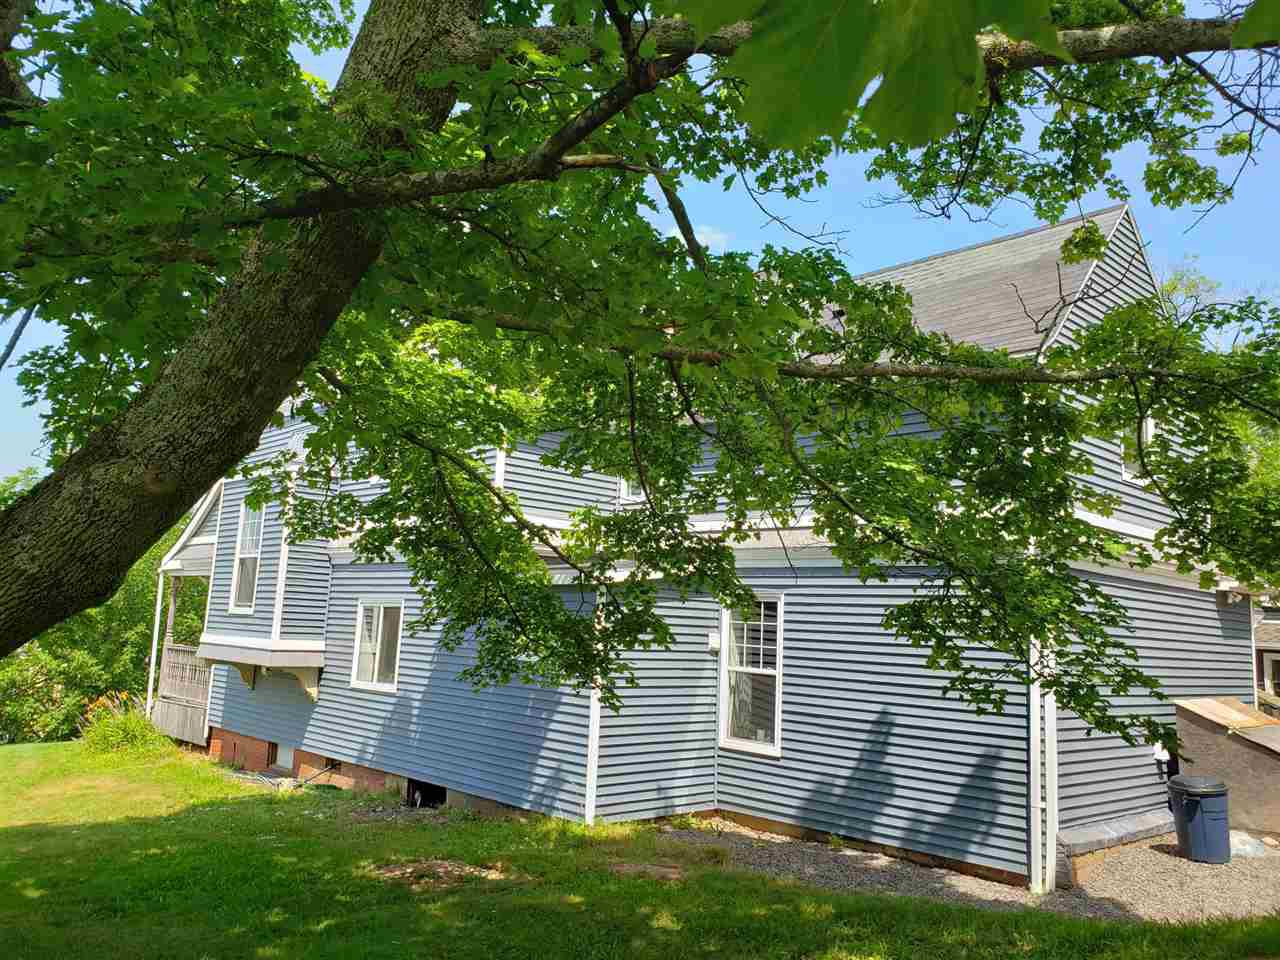 Photo 2: Photos: 29 Prospect Street in Wolfville: 404-Kings County Multi-Family for sale (Annapolis Valley)  : MLS®# 202014423